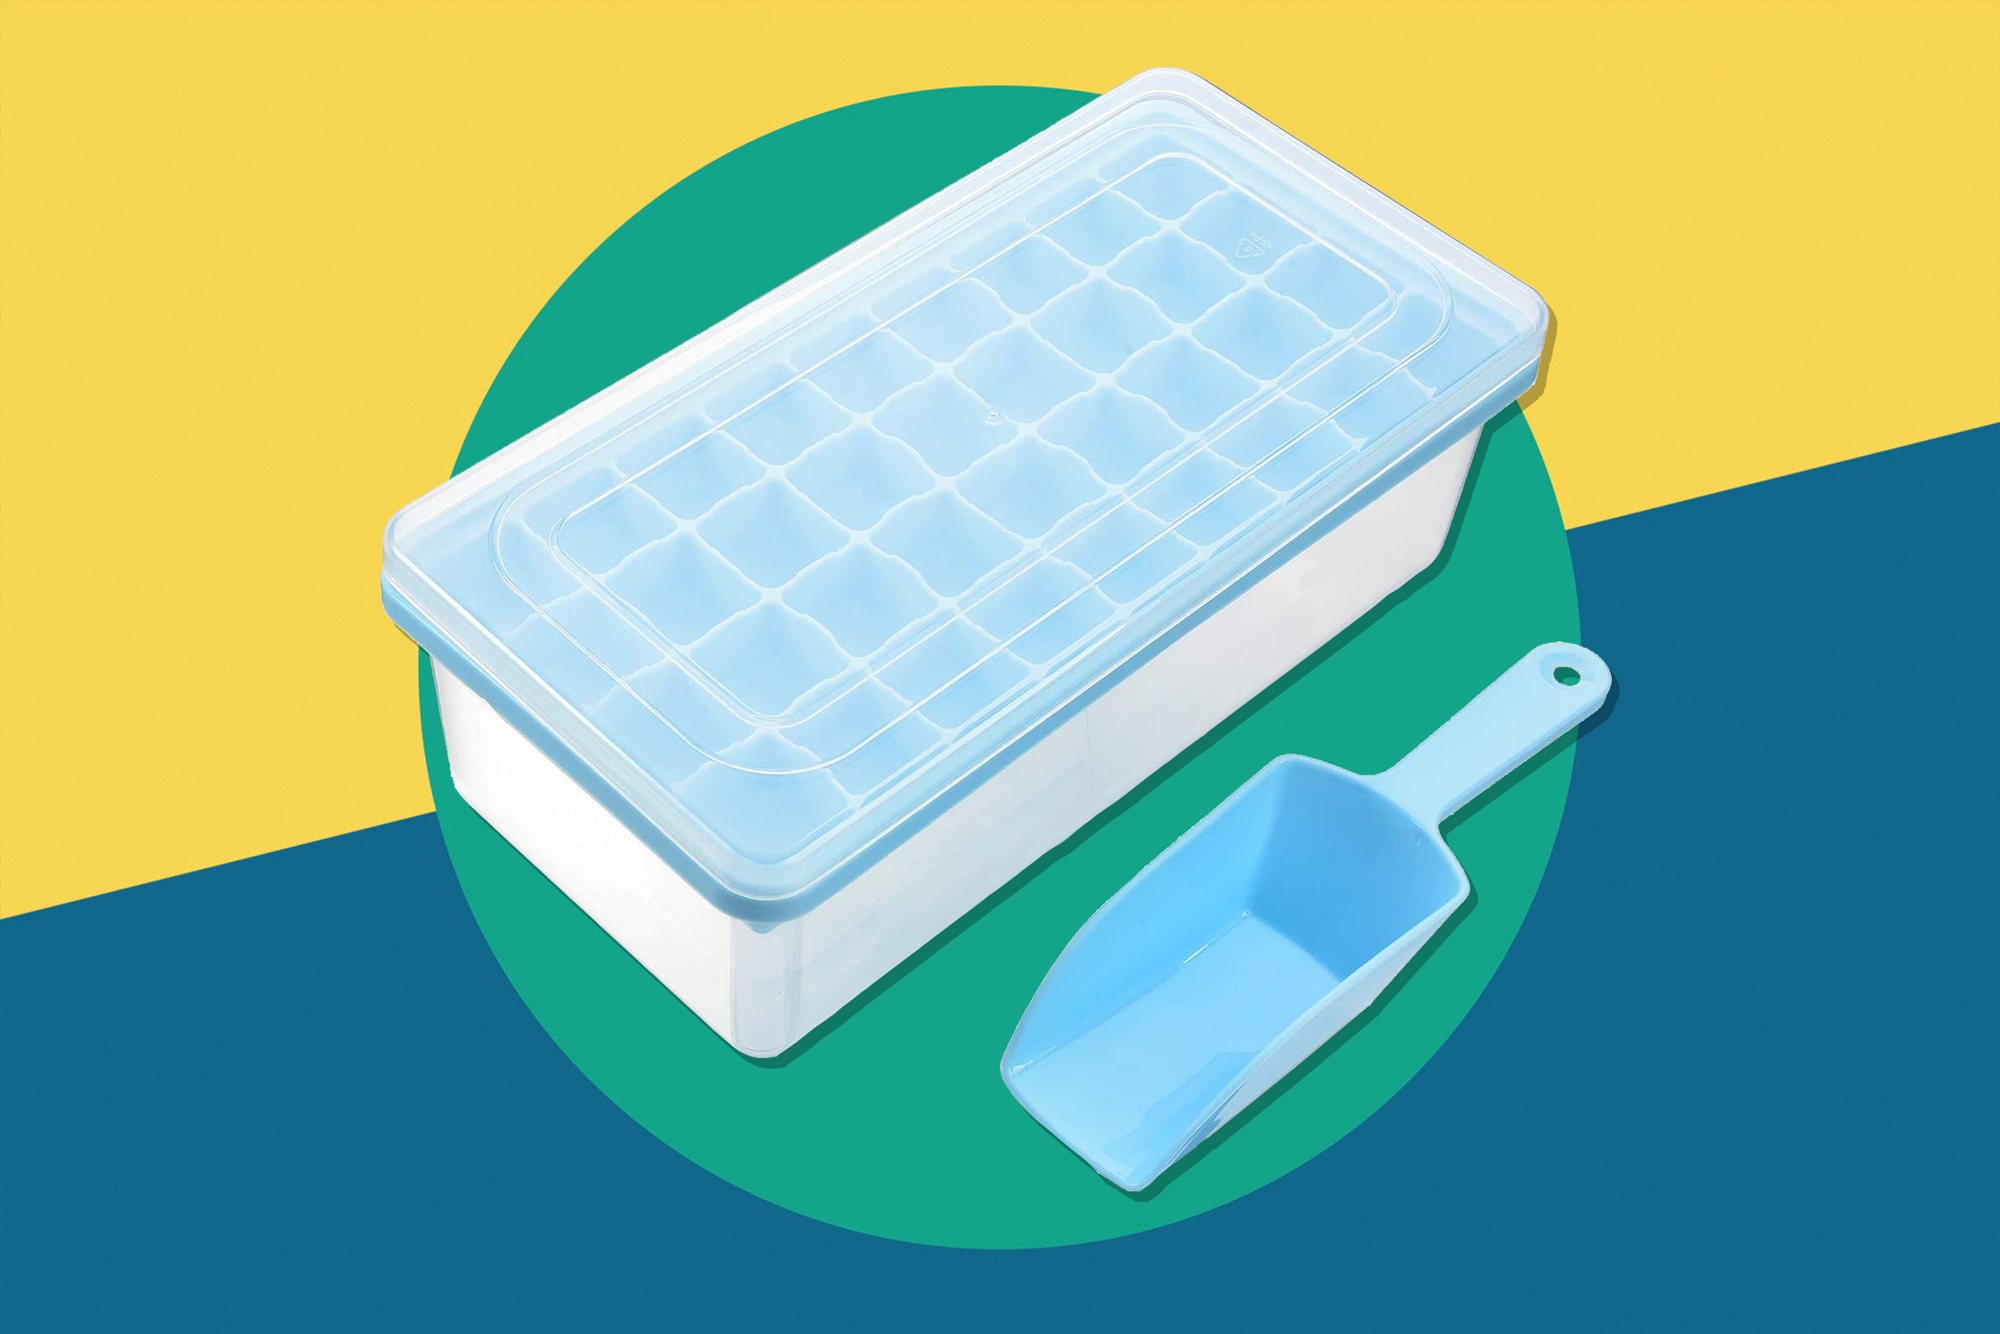 ice cube tray with bin, lid, and scoop